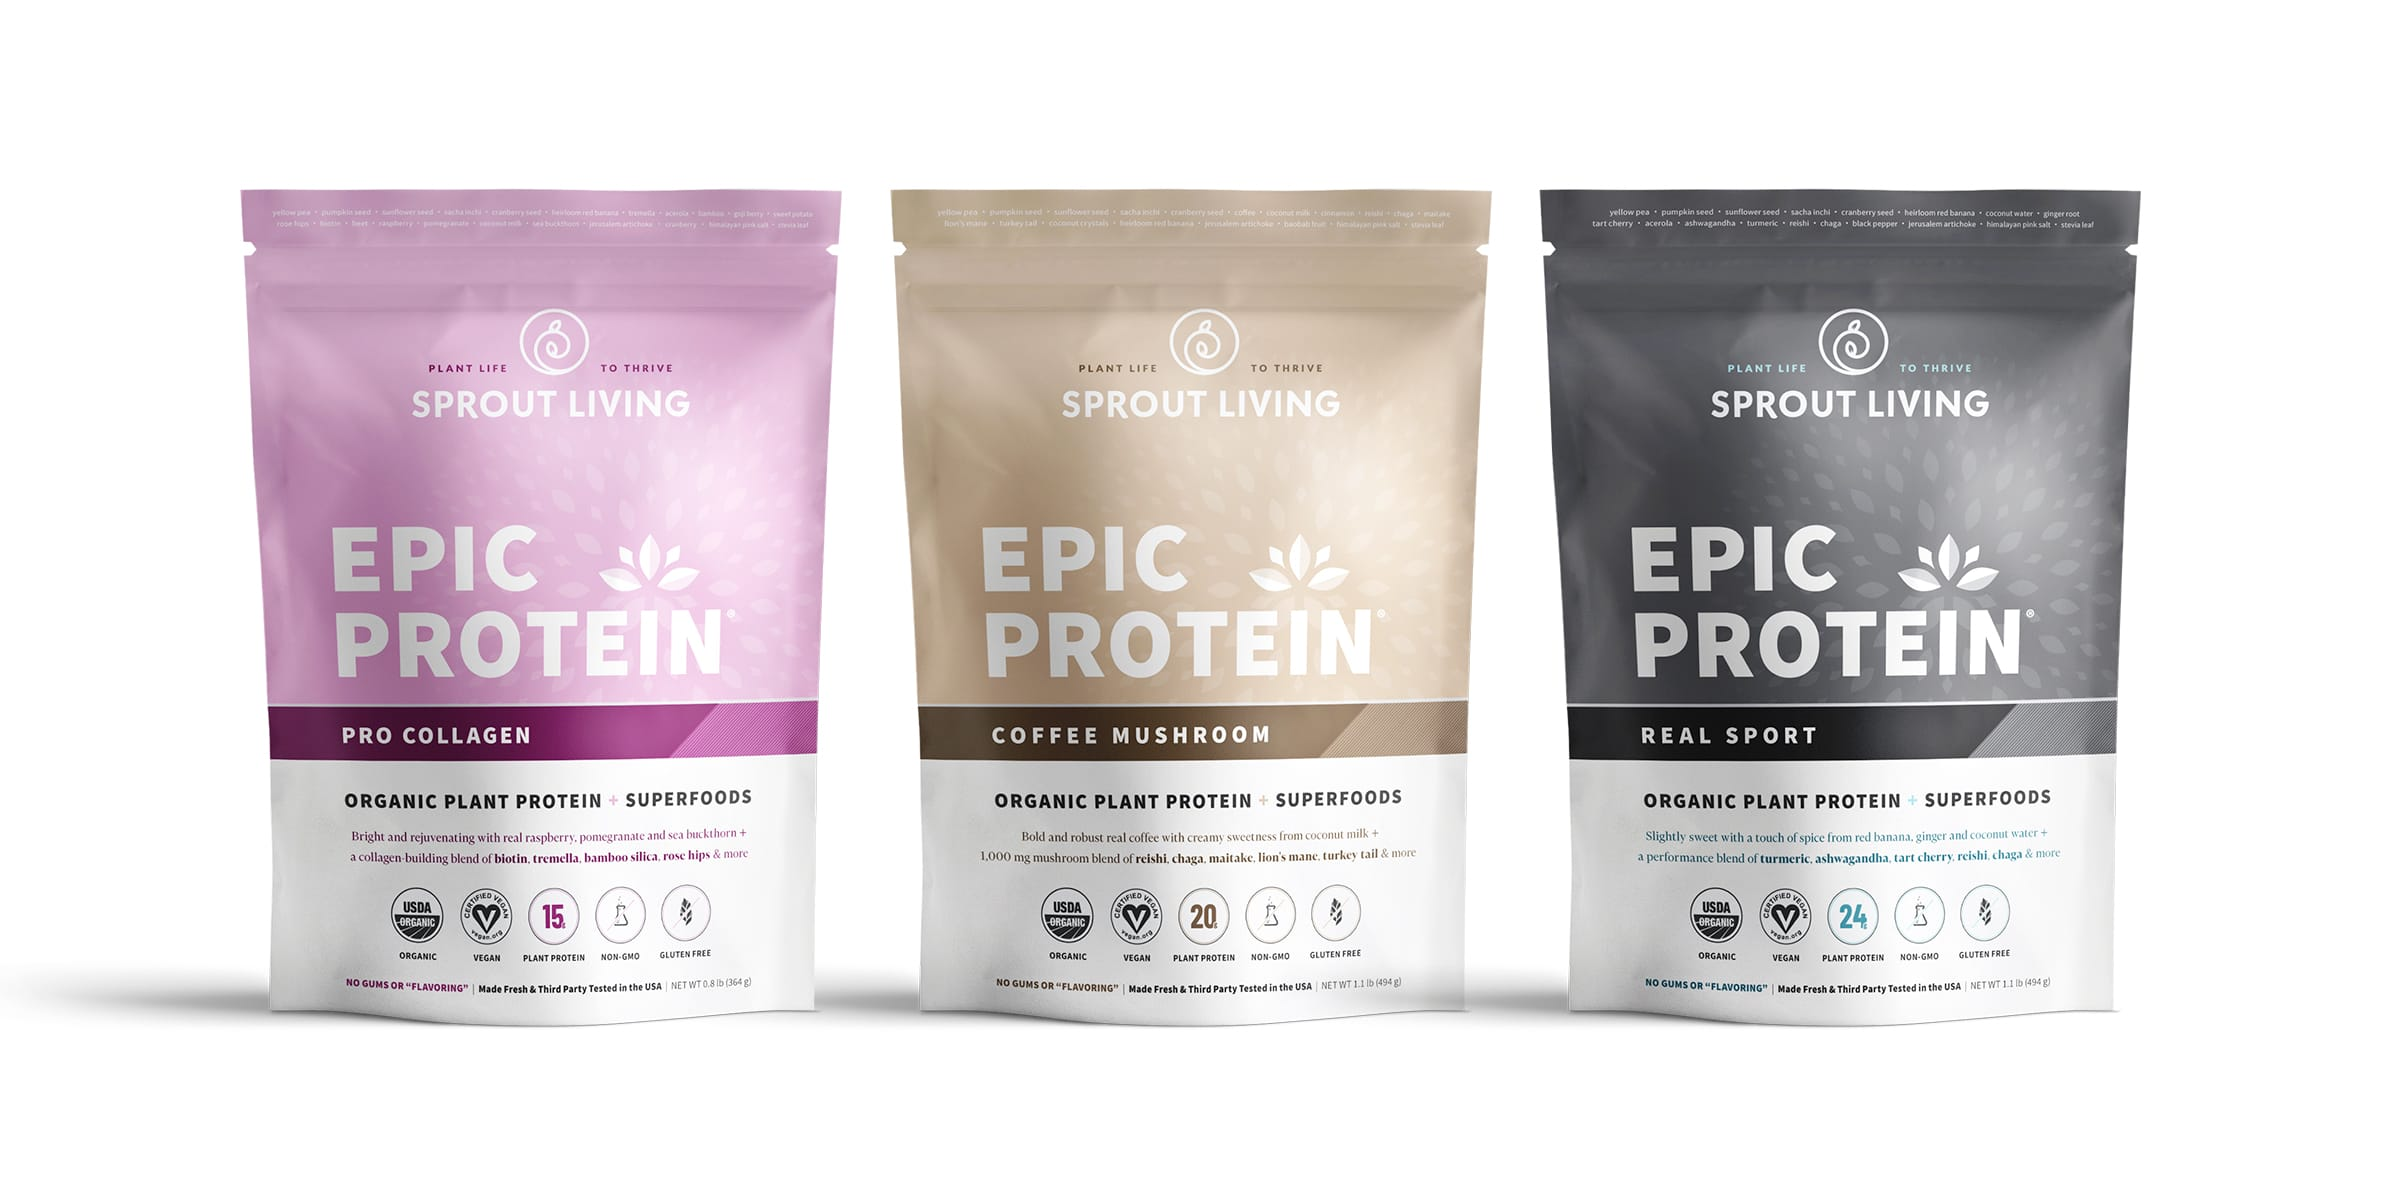 Sprout Living Launches New Superfood-Packed Epic Protein